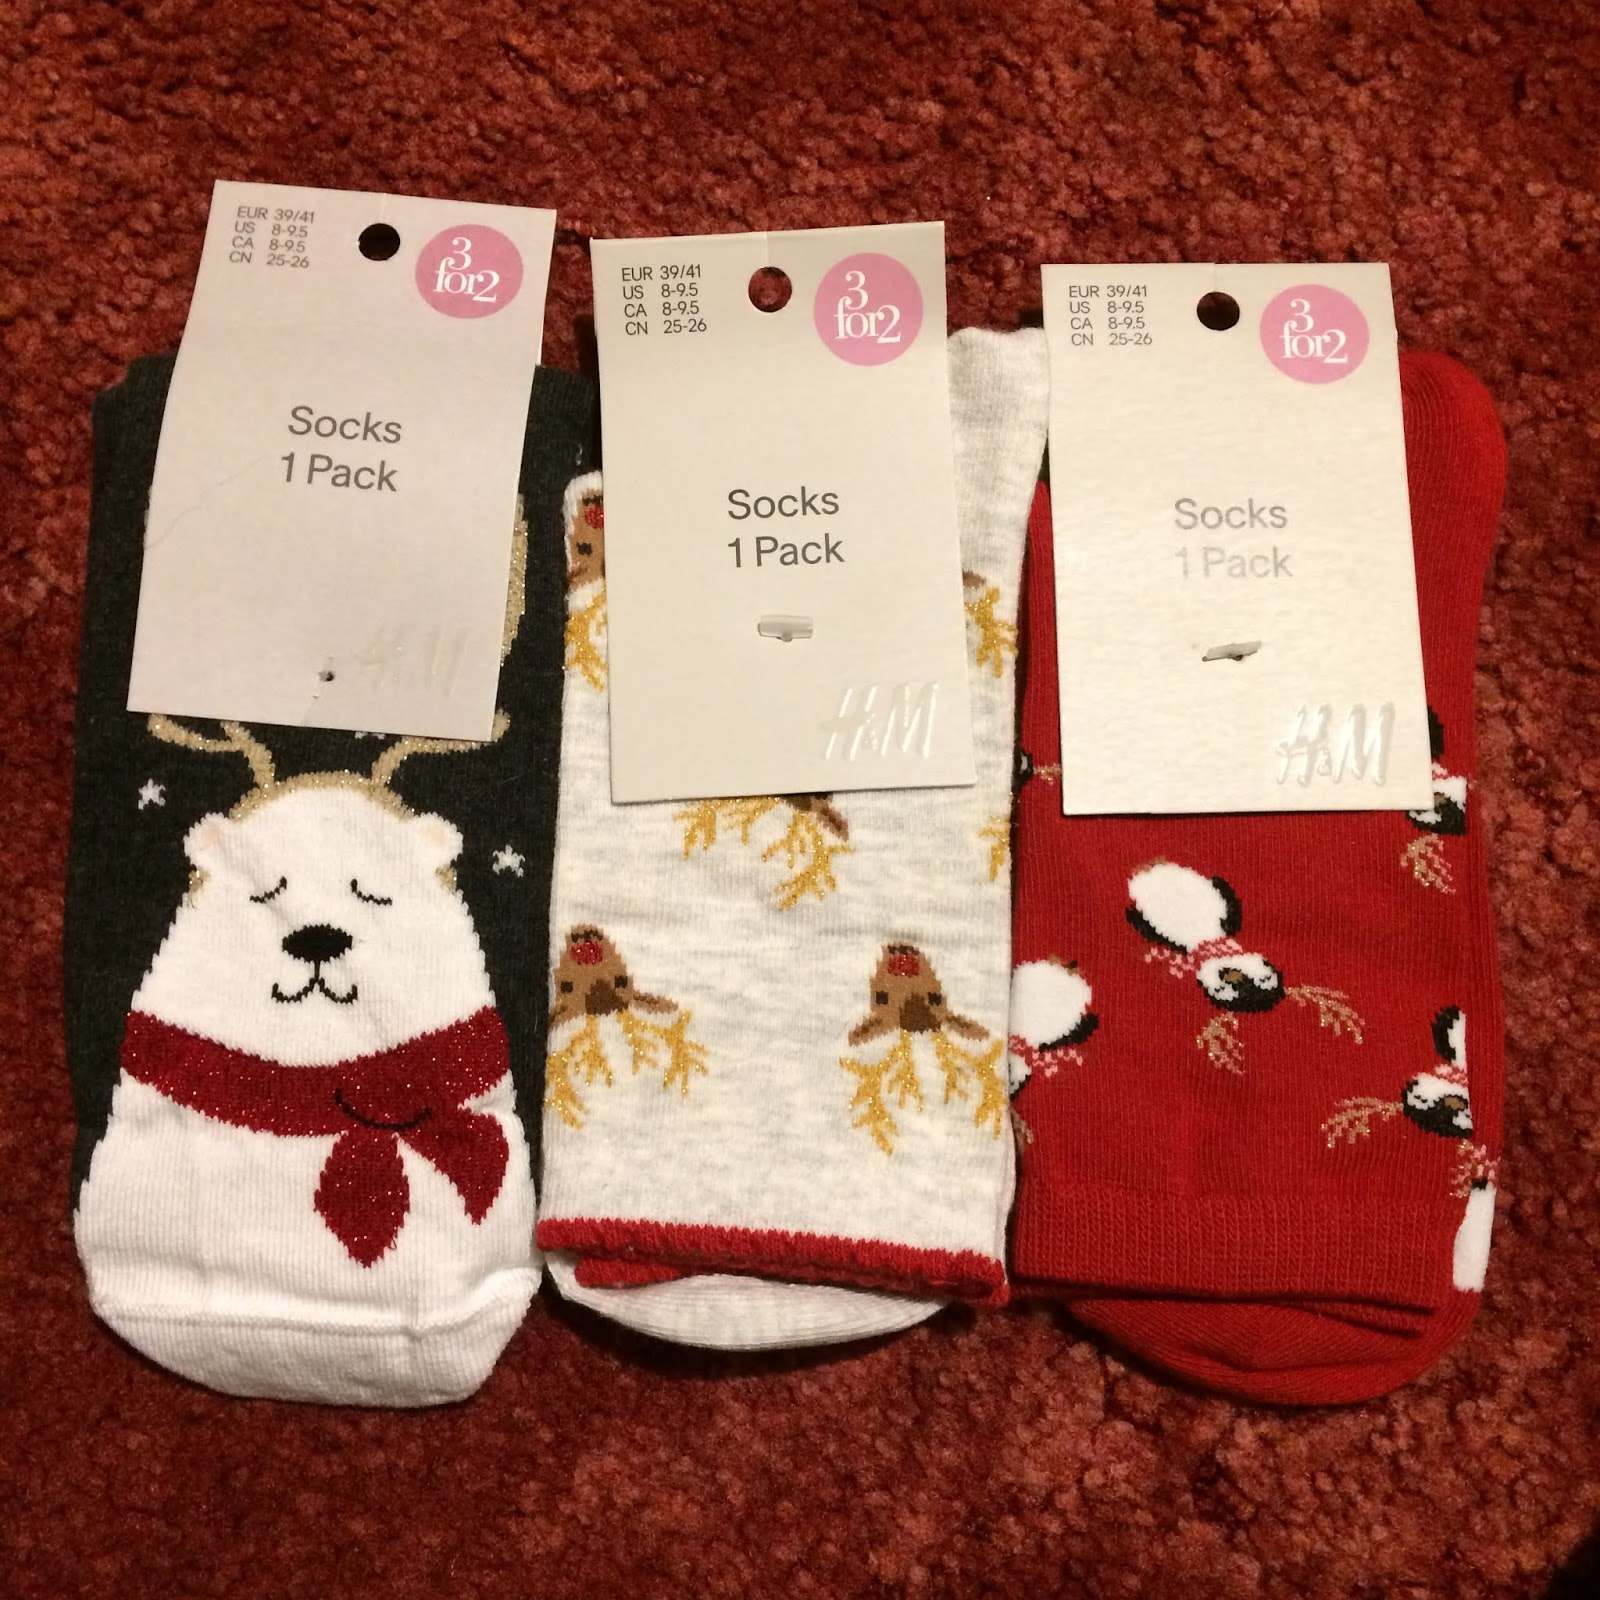 Three pairs of festive socks, one navy blue pair featuring a polar bear weaing a red scarf and antlers, a pale grey pair with a repeated pattern of Rudolph's head, and a bright red pair with a repeated pattern of a penguin wearing antlers.